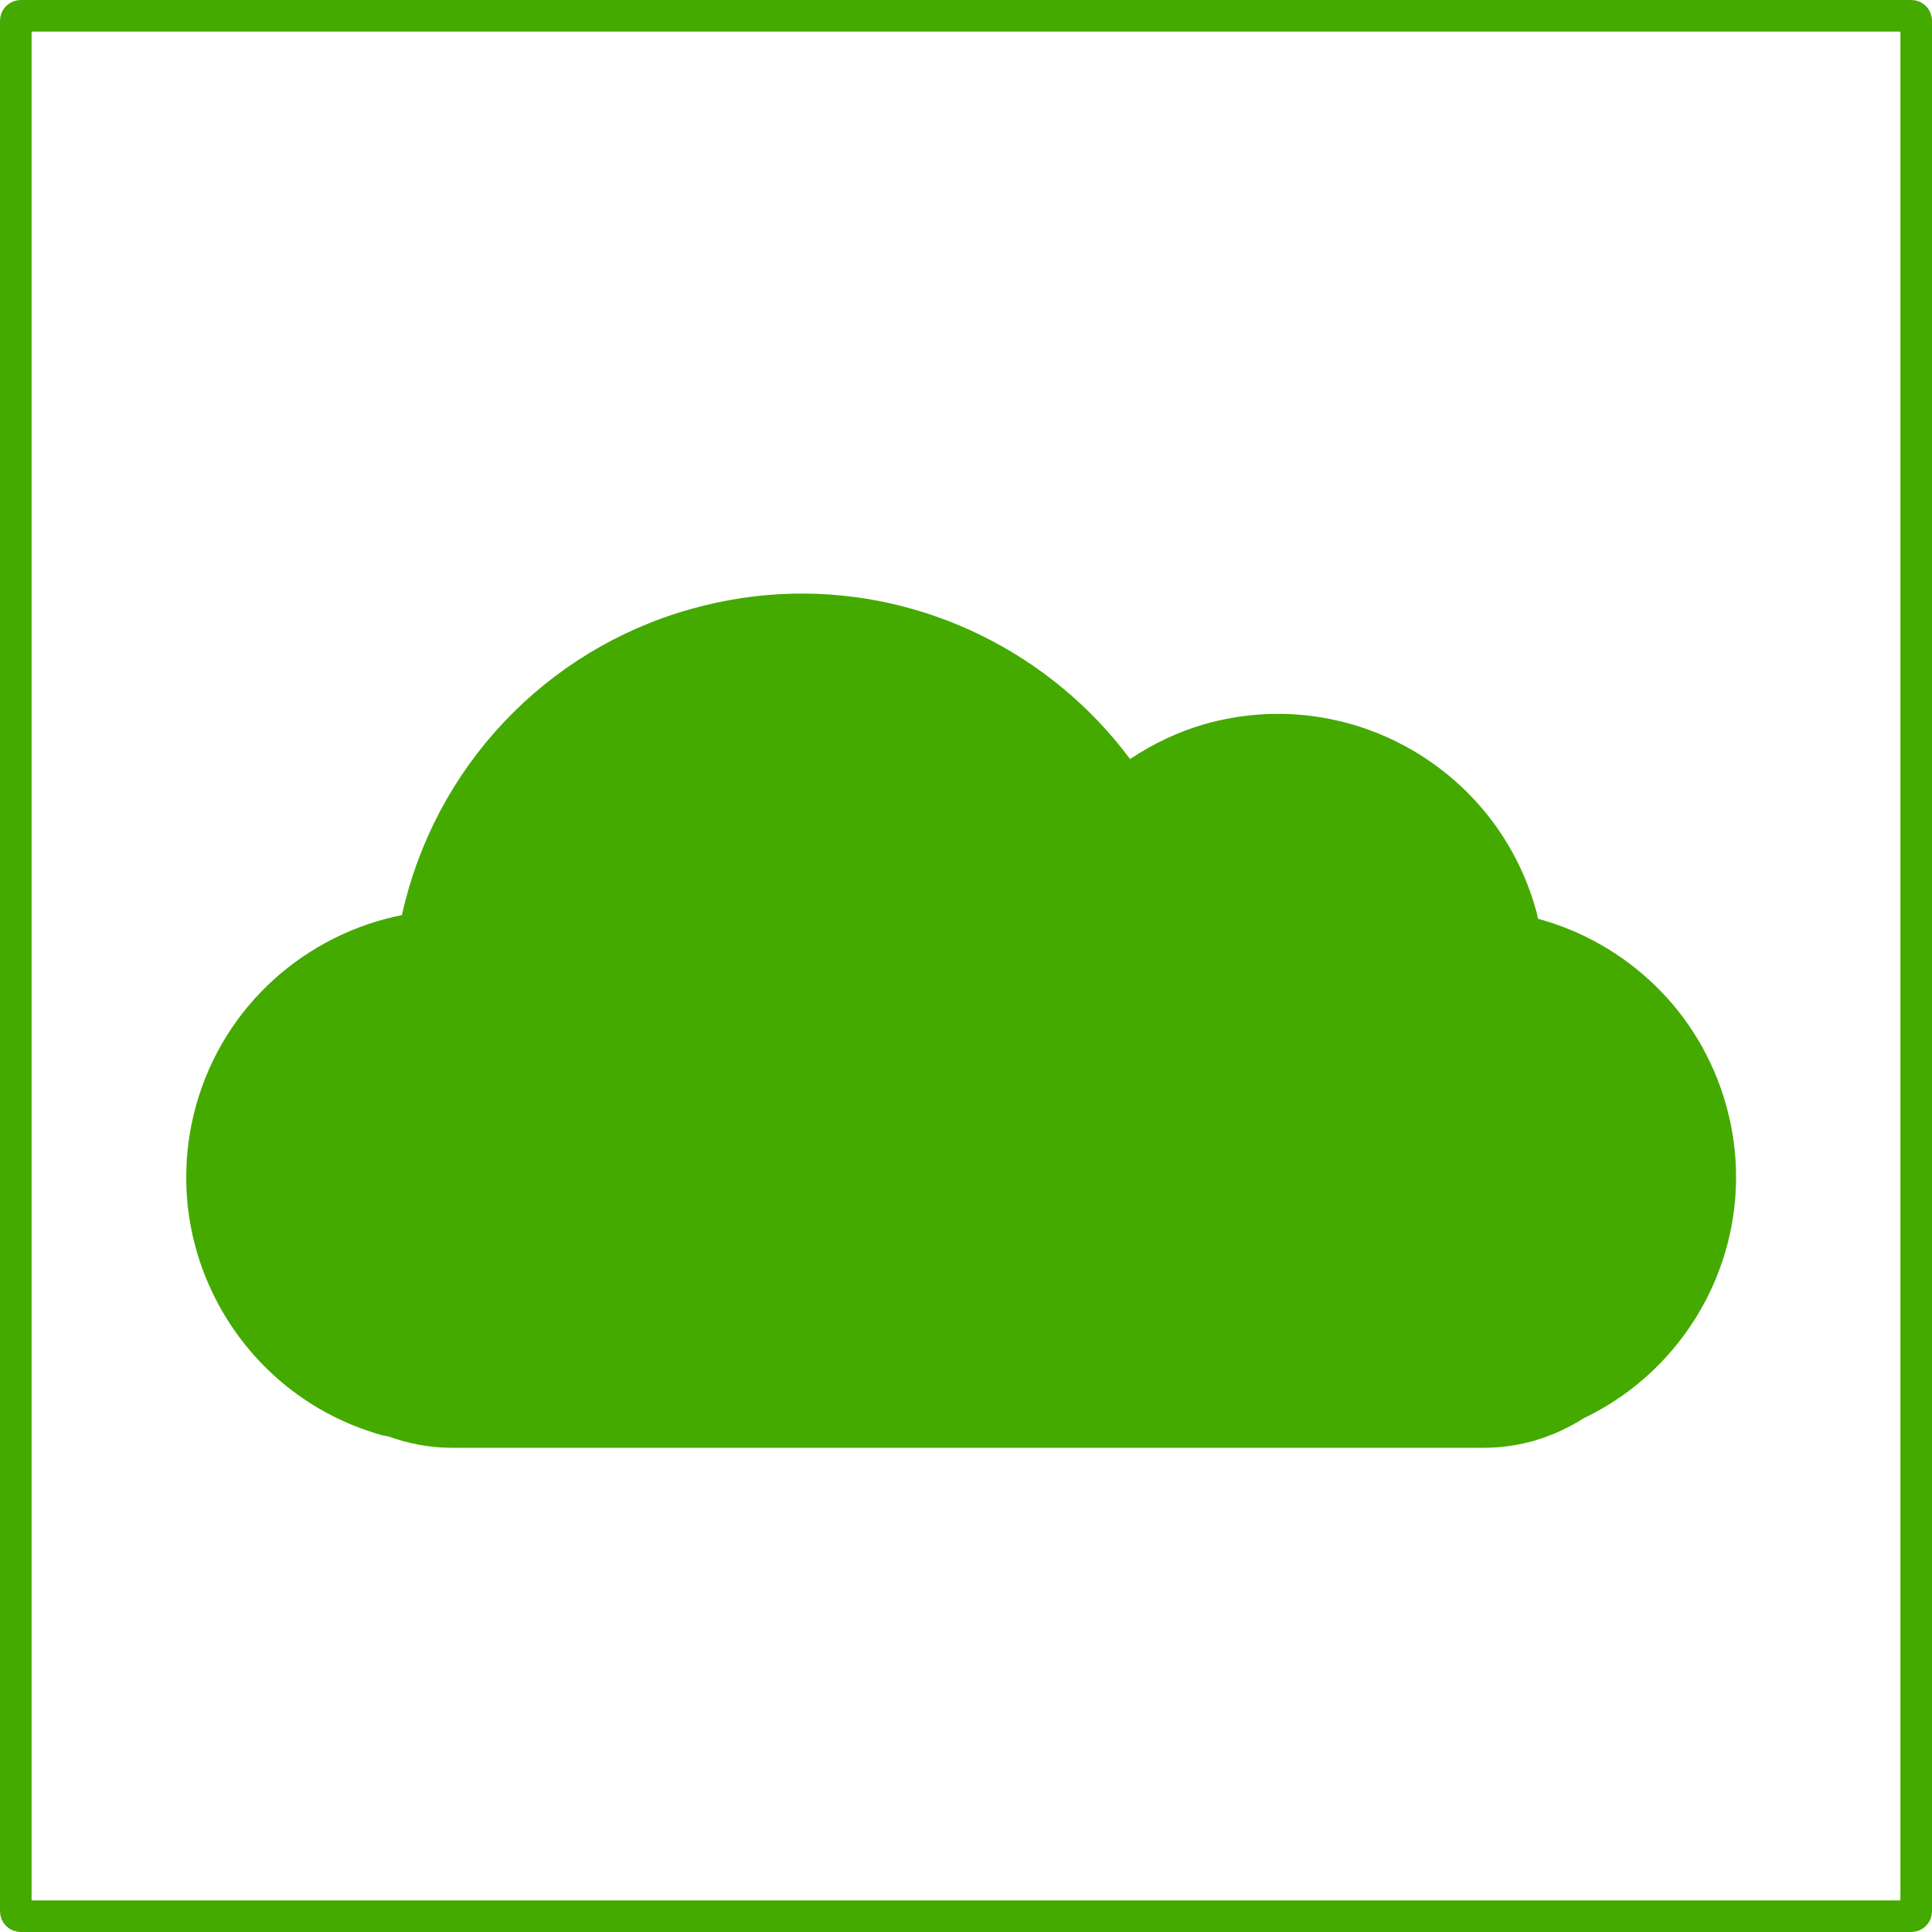 eco green cloud icon by dominiquechappard